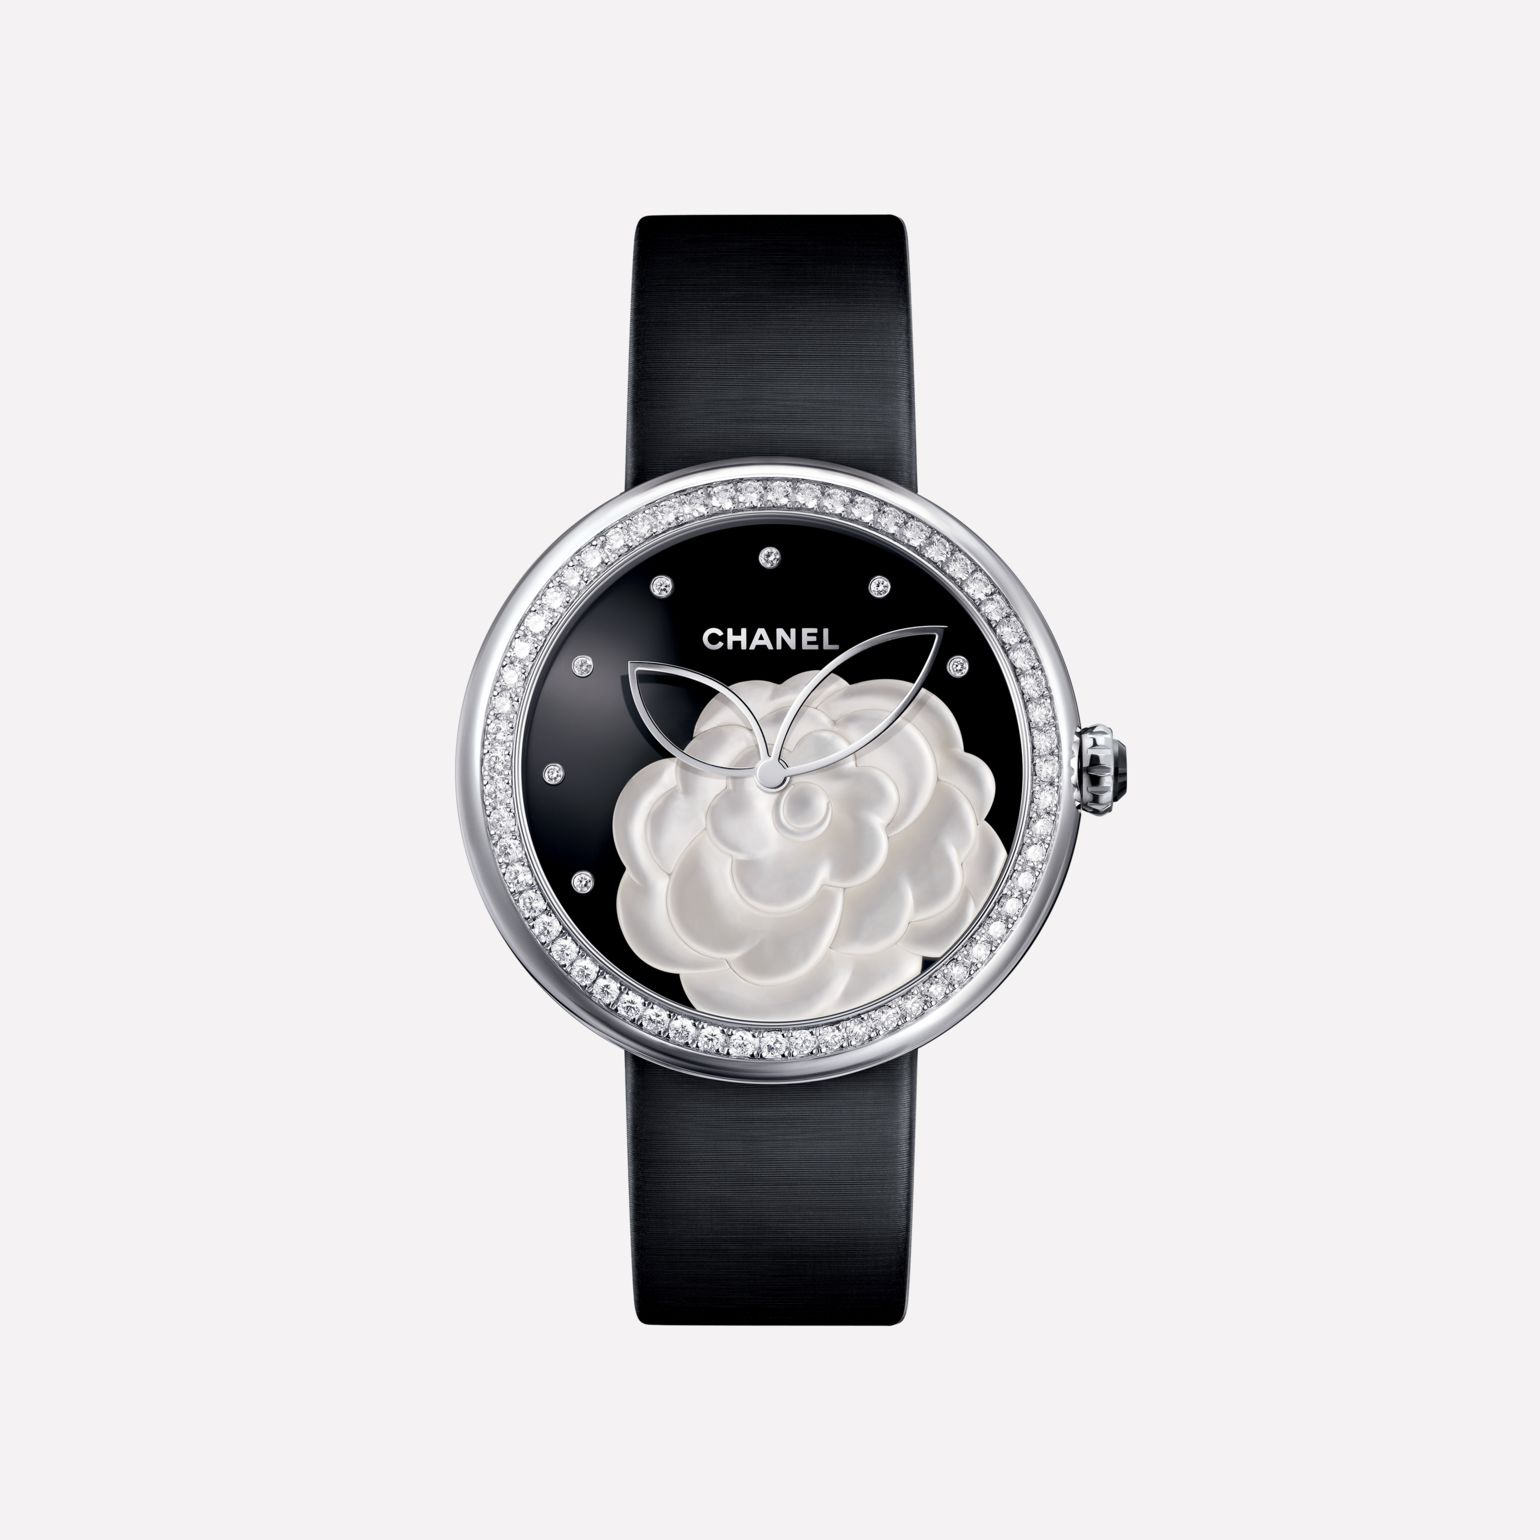 Mademoiselle Privé Camellia in mother-of-pearl marquetry, onyx dial, diamond indicators